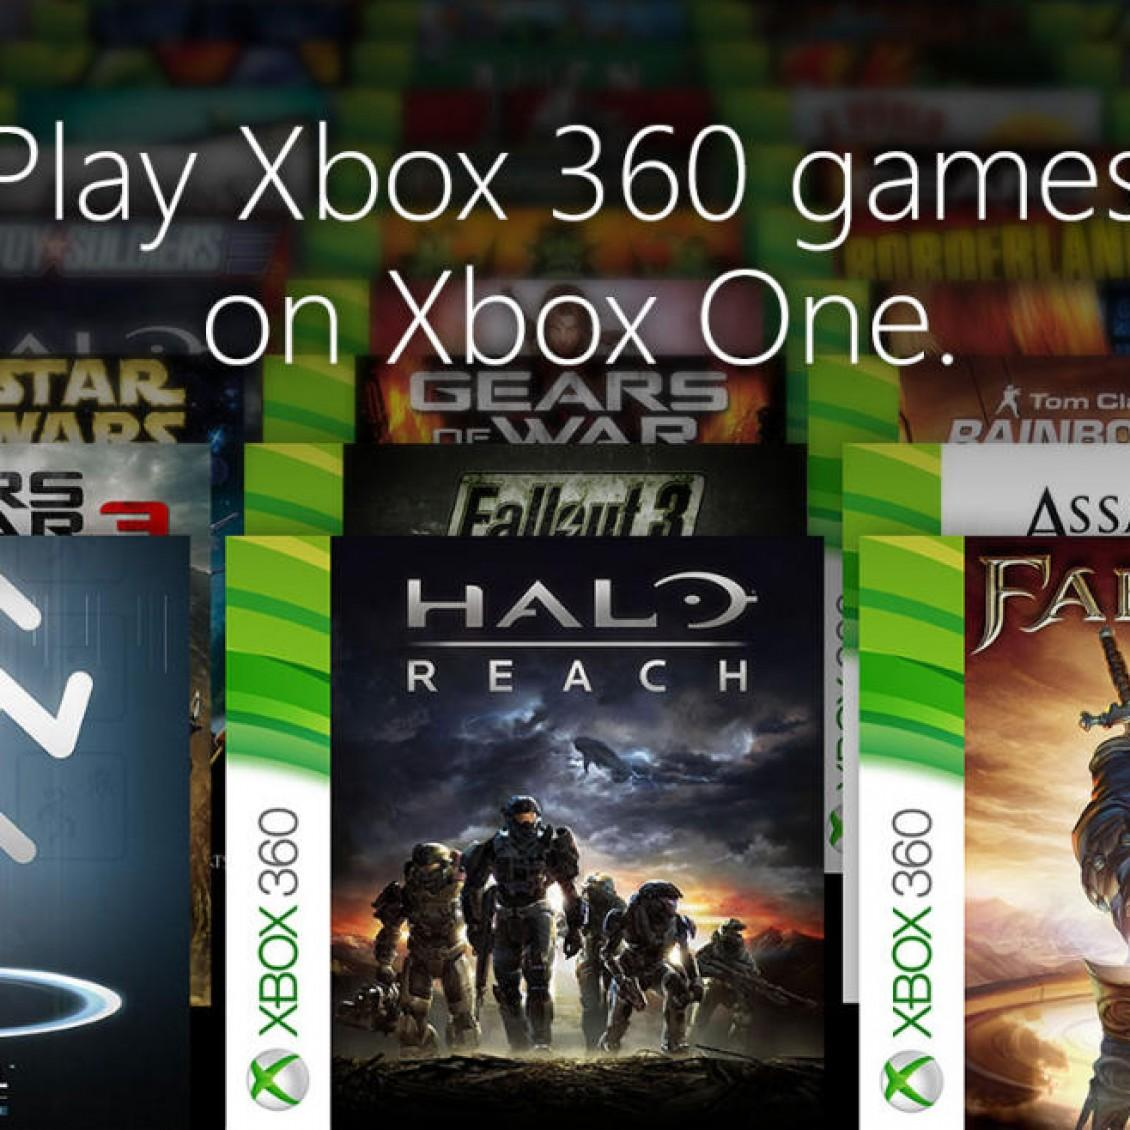 Xbox 360 Video Games New Releases Xbox 360 Game Release ...